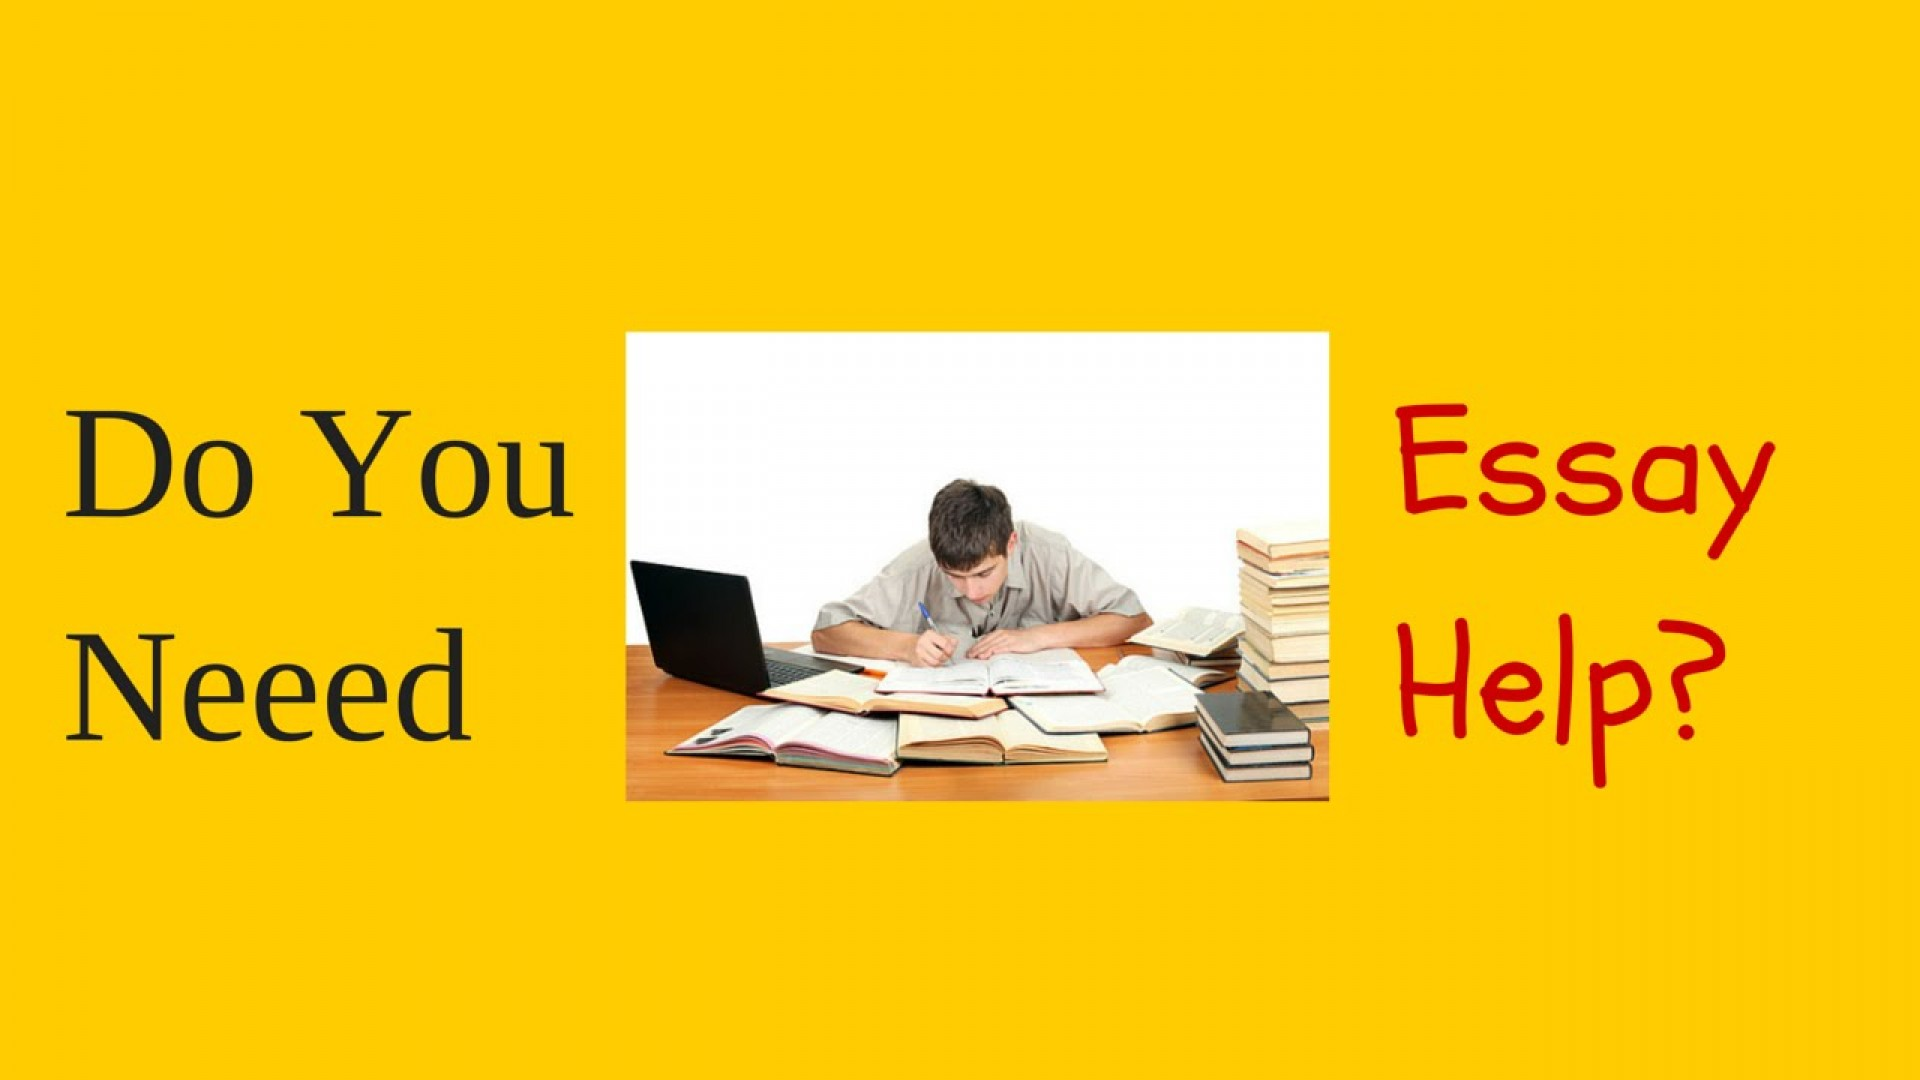 003 Maxresdefault Essay Tutor Unique Online Jobs Pte Tutorials College Nyc 1920